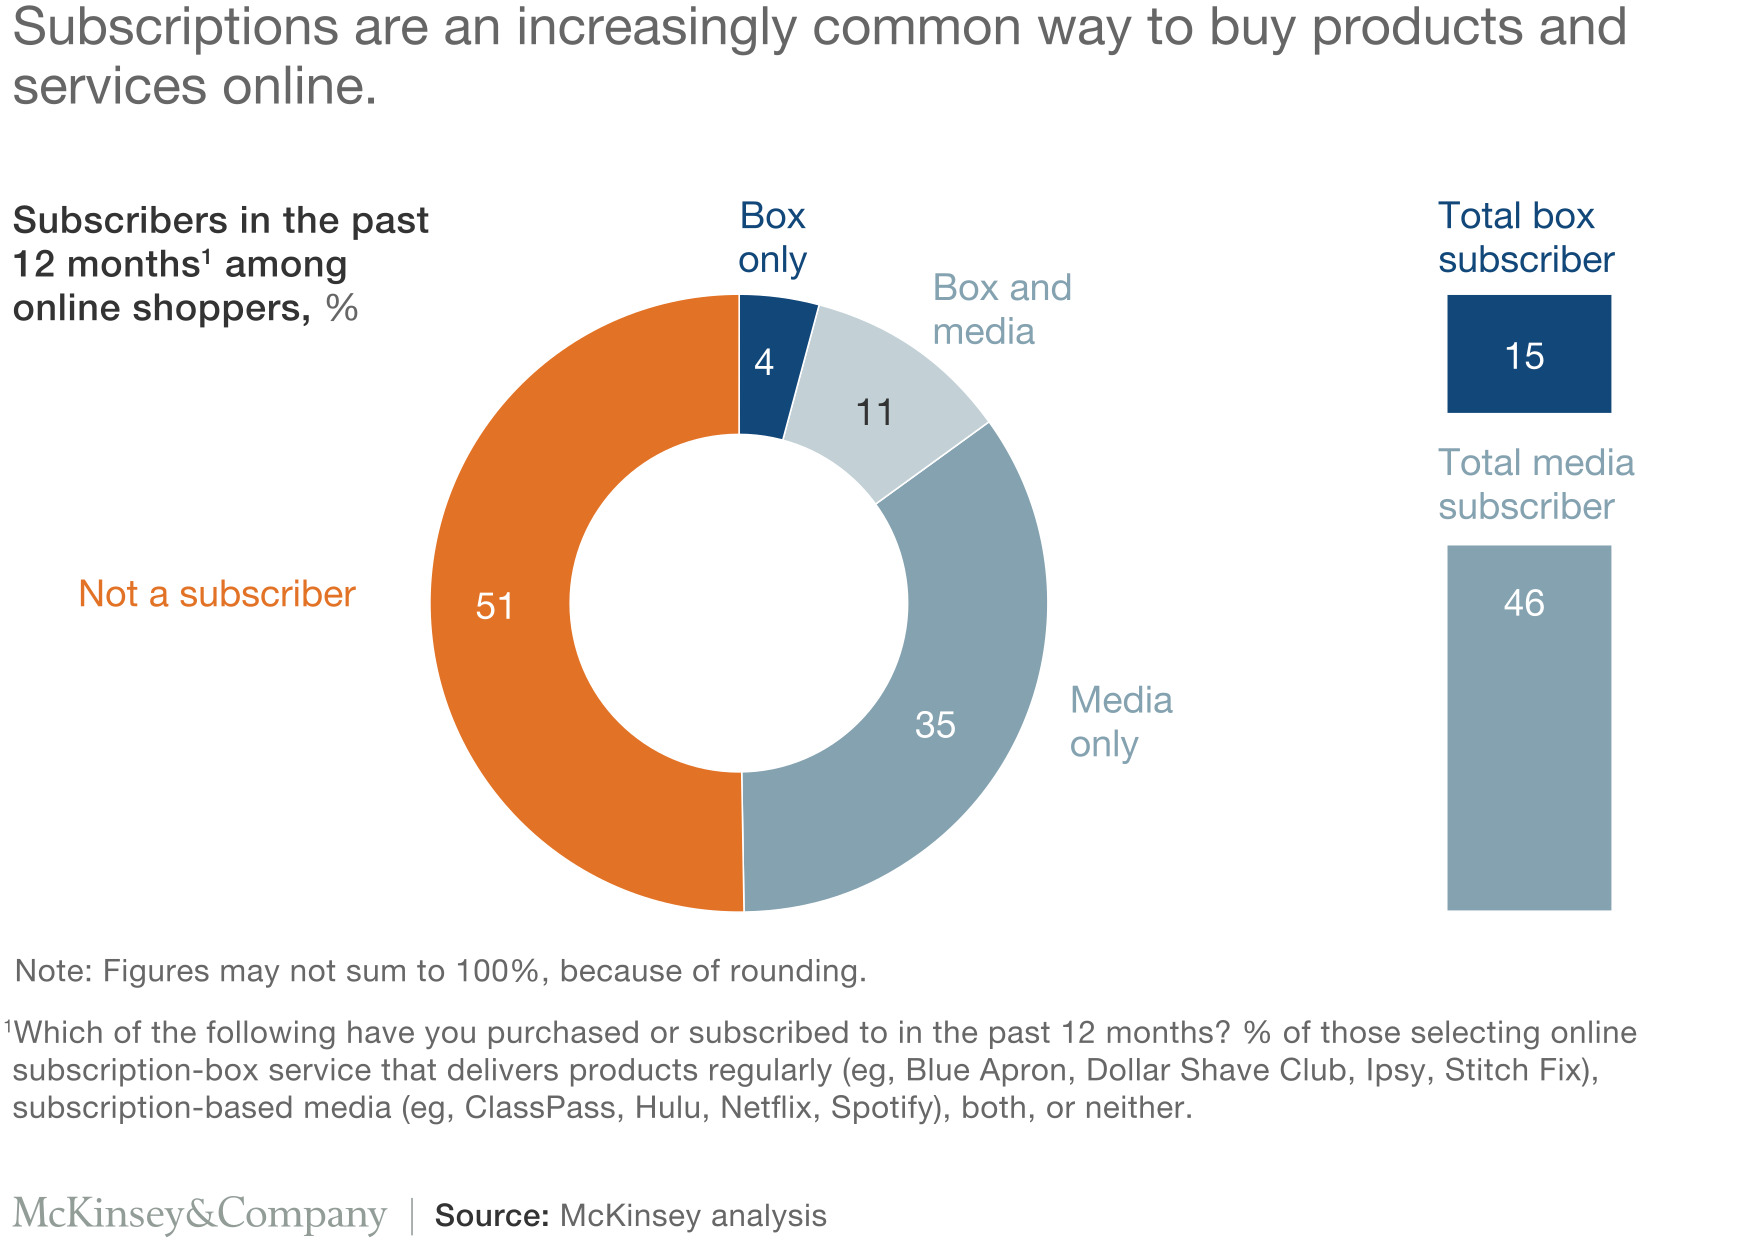 Subscriptions are an increasingly common way to buy products and services online